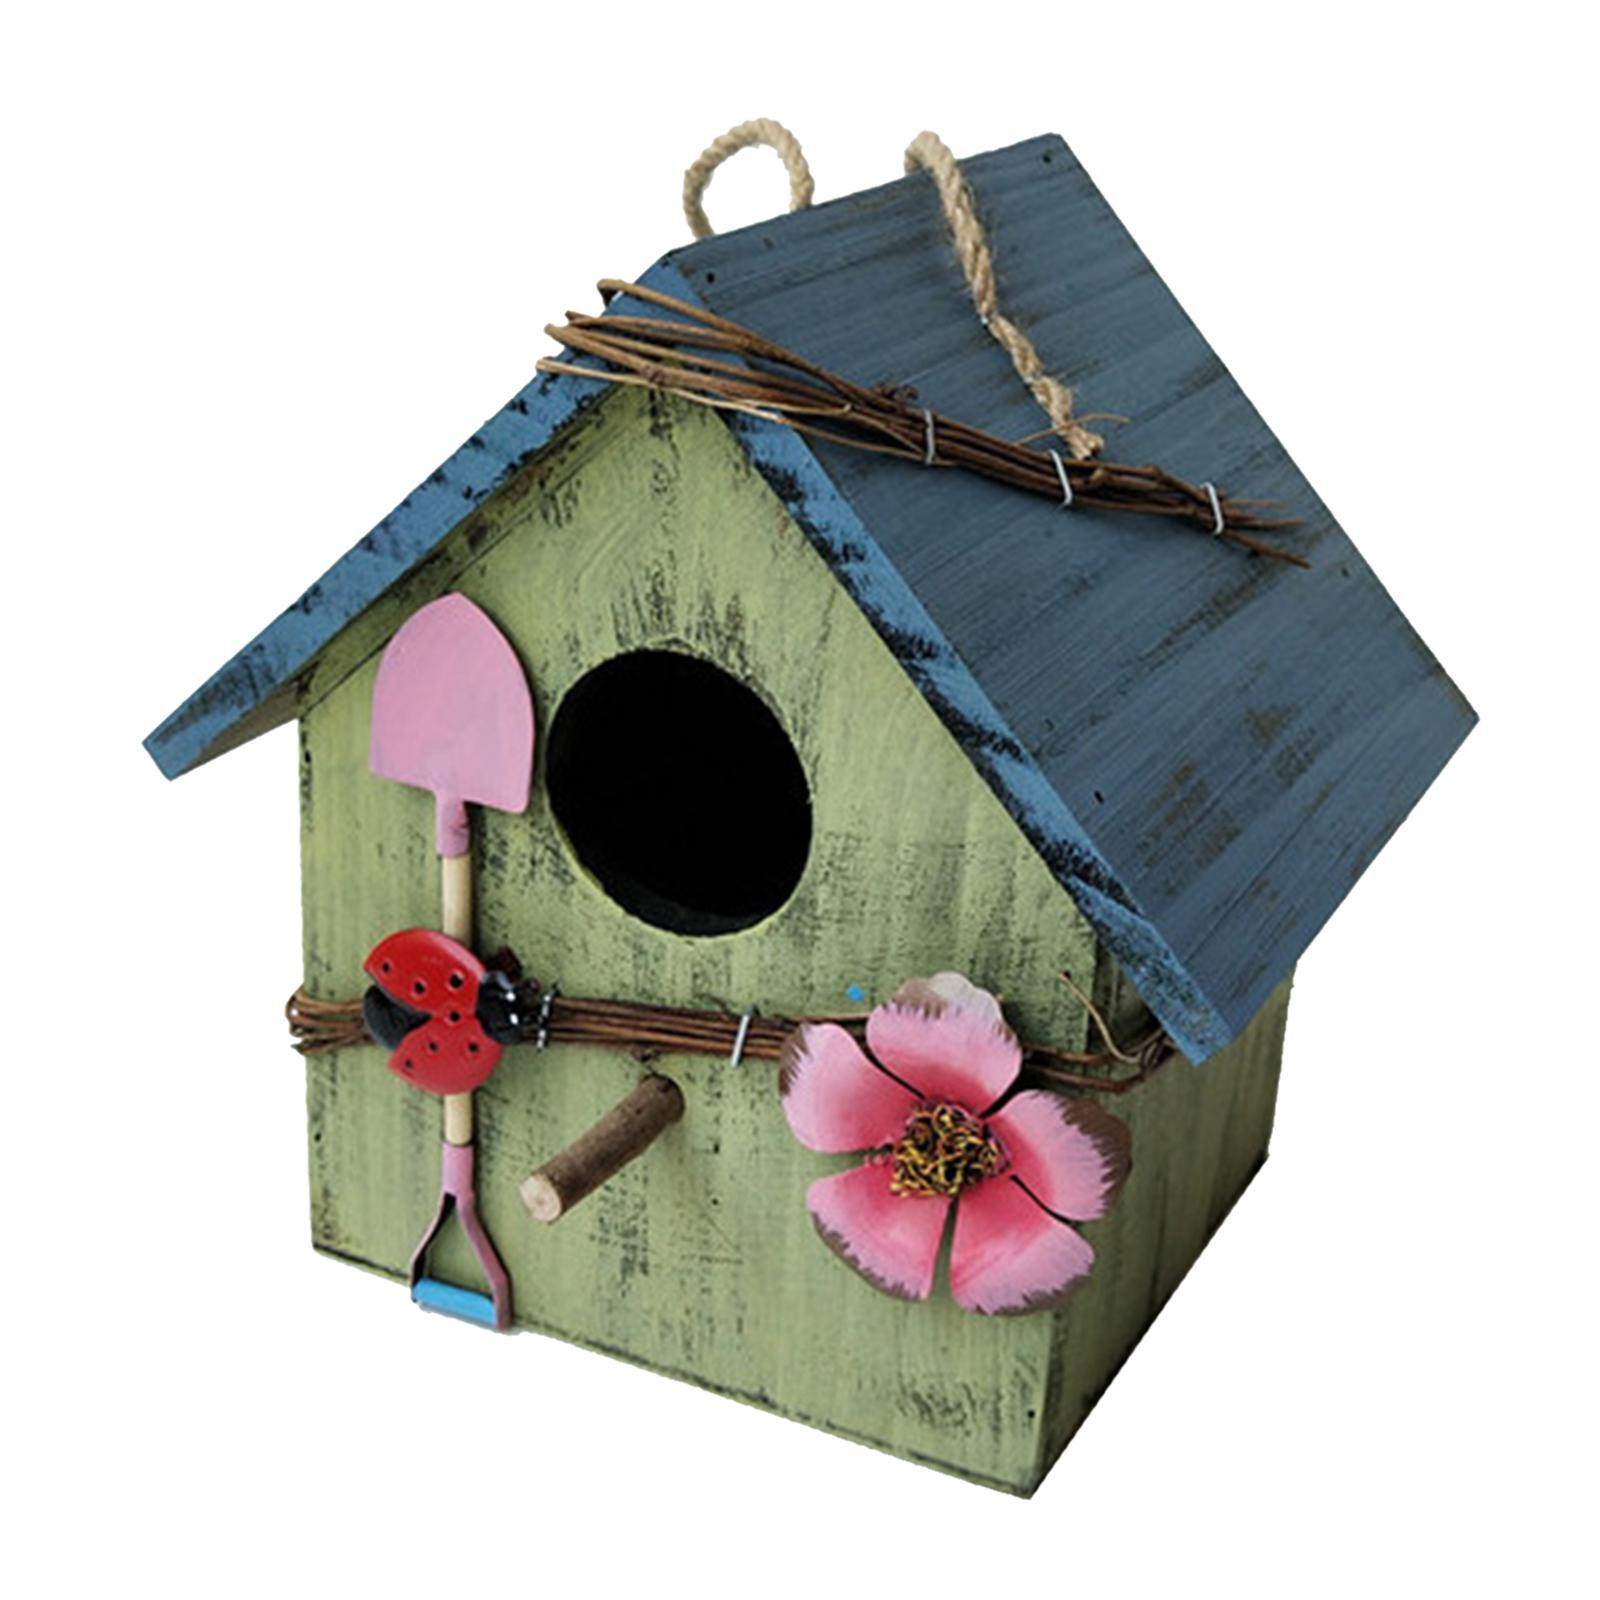 thumbnail 13 - Antique Hand Painted Wood Birdhouse Decorative Outdoor Bird House Garden